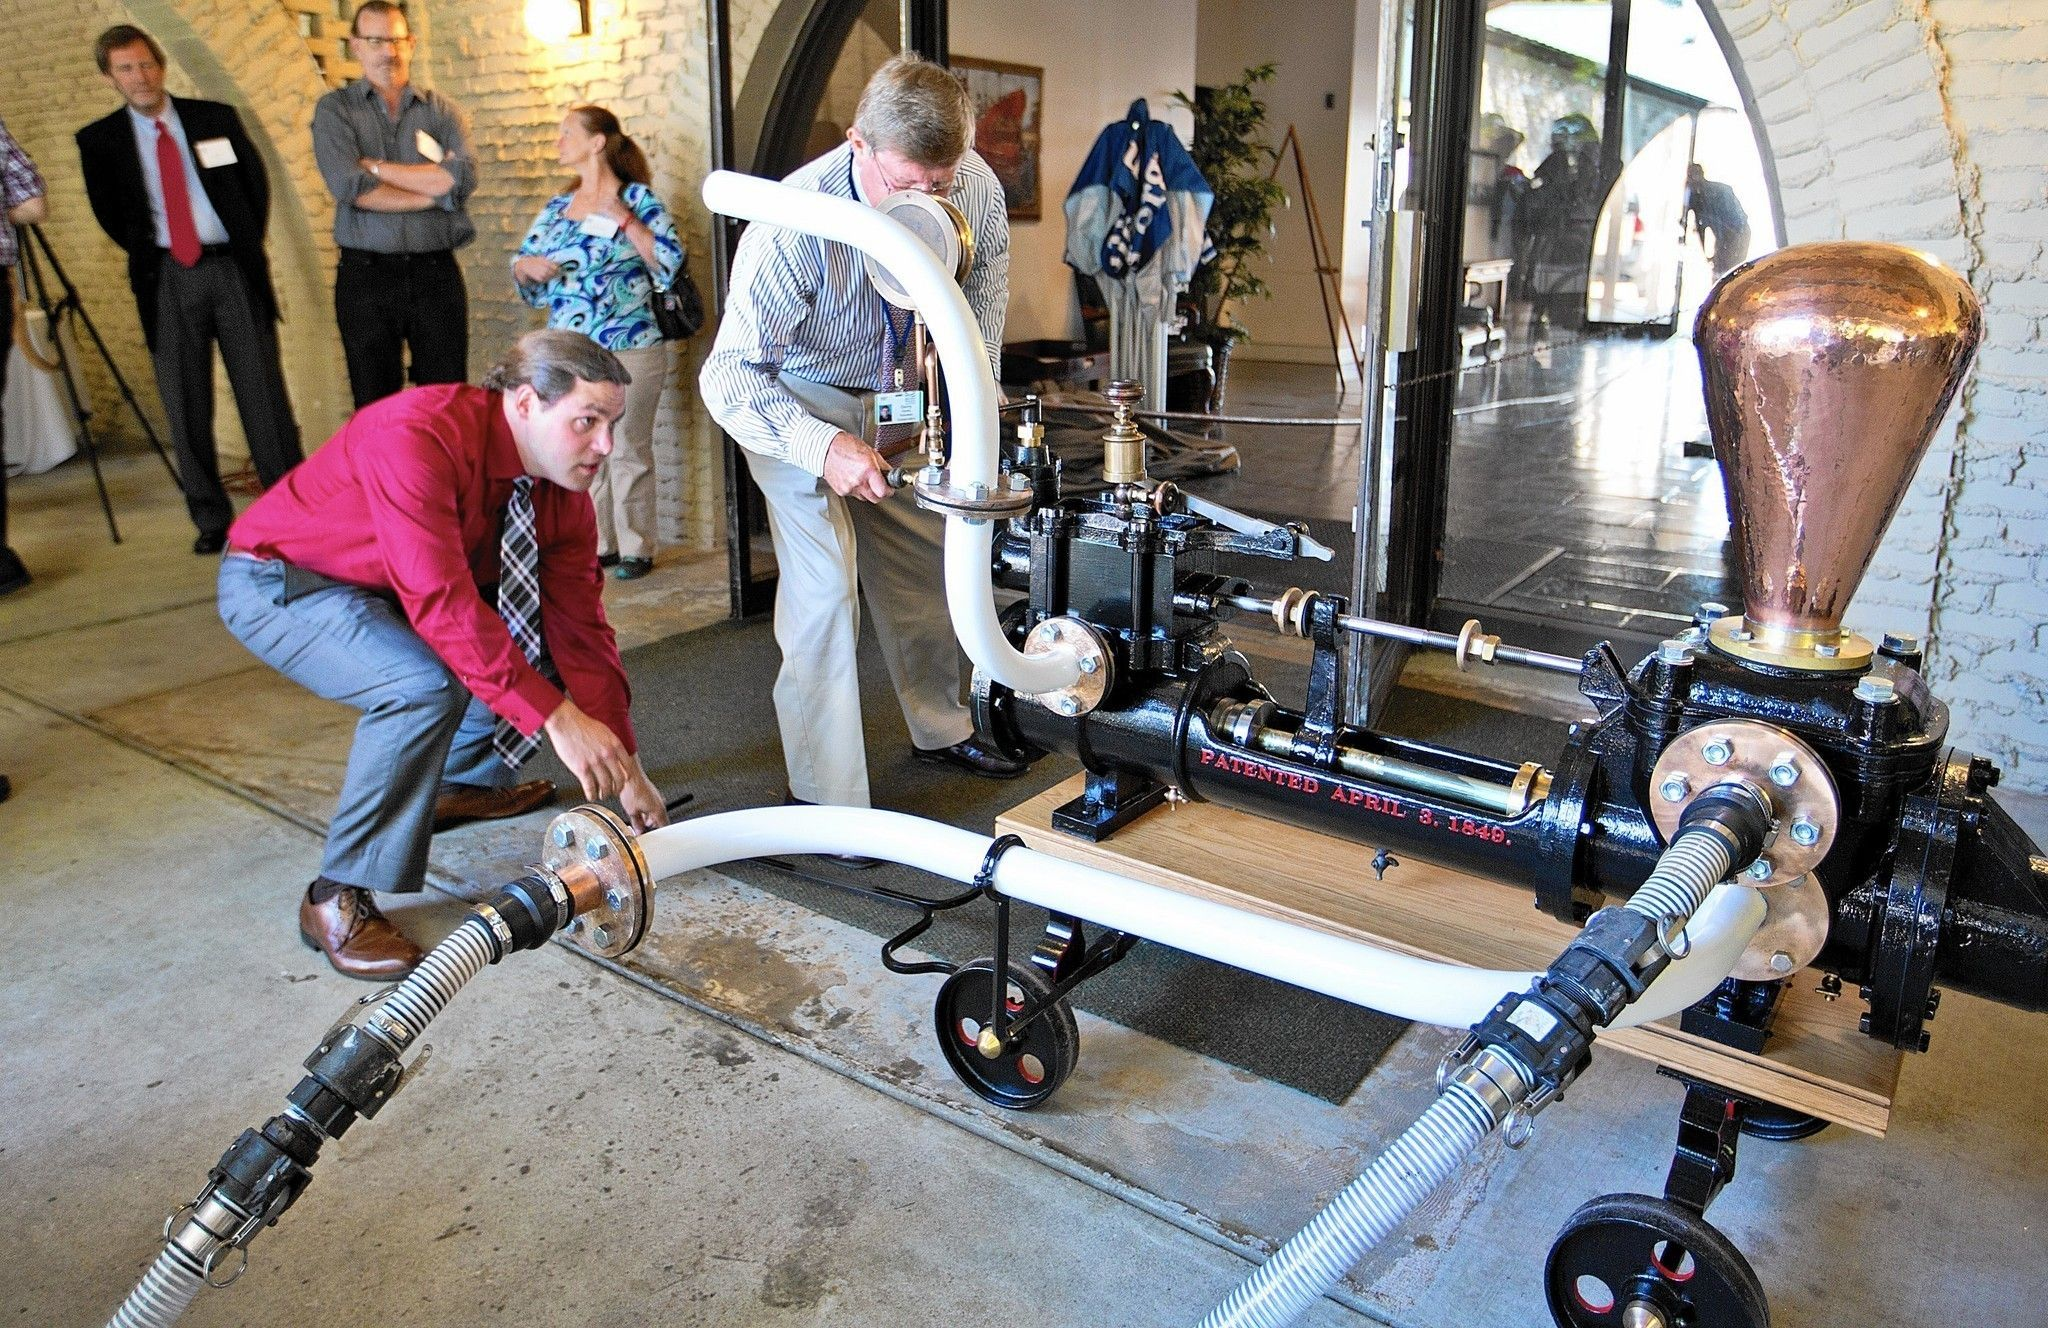 Nearly 155 years after one of America's greatest naval engineers choose them for history's first mechanized warship, two Worthington pumps recovered from the wreck of the Civil War ironclad USS Monitor have been designated as a world Historic Mechanical Engineering Landmark.